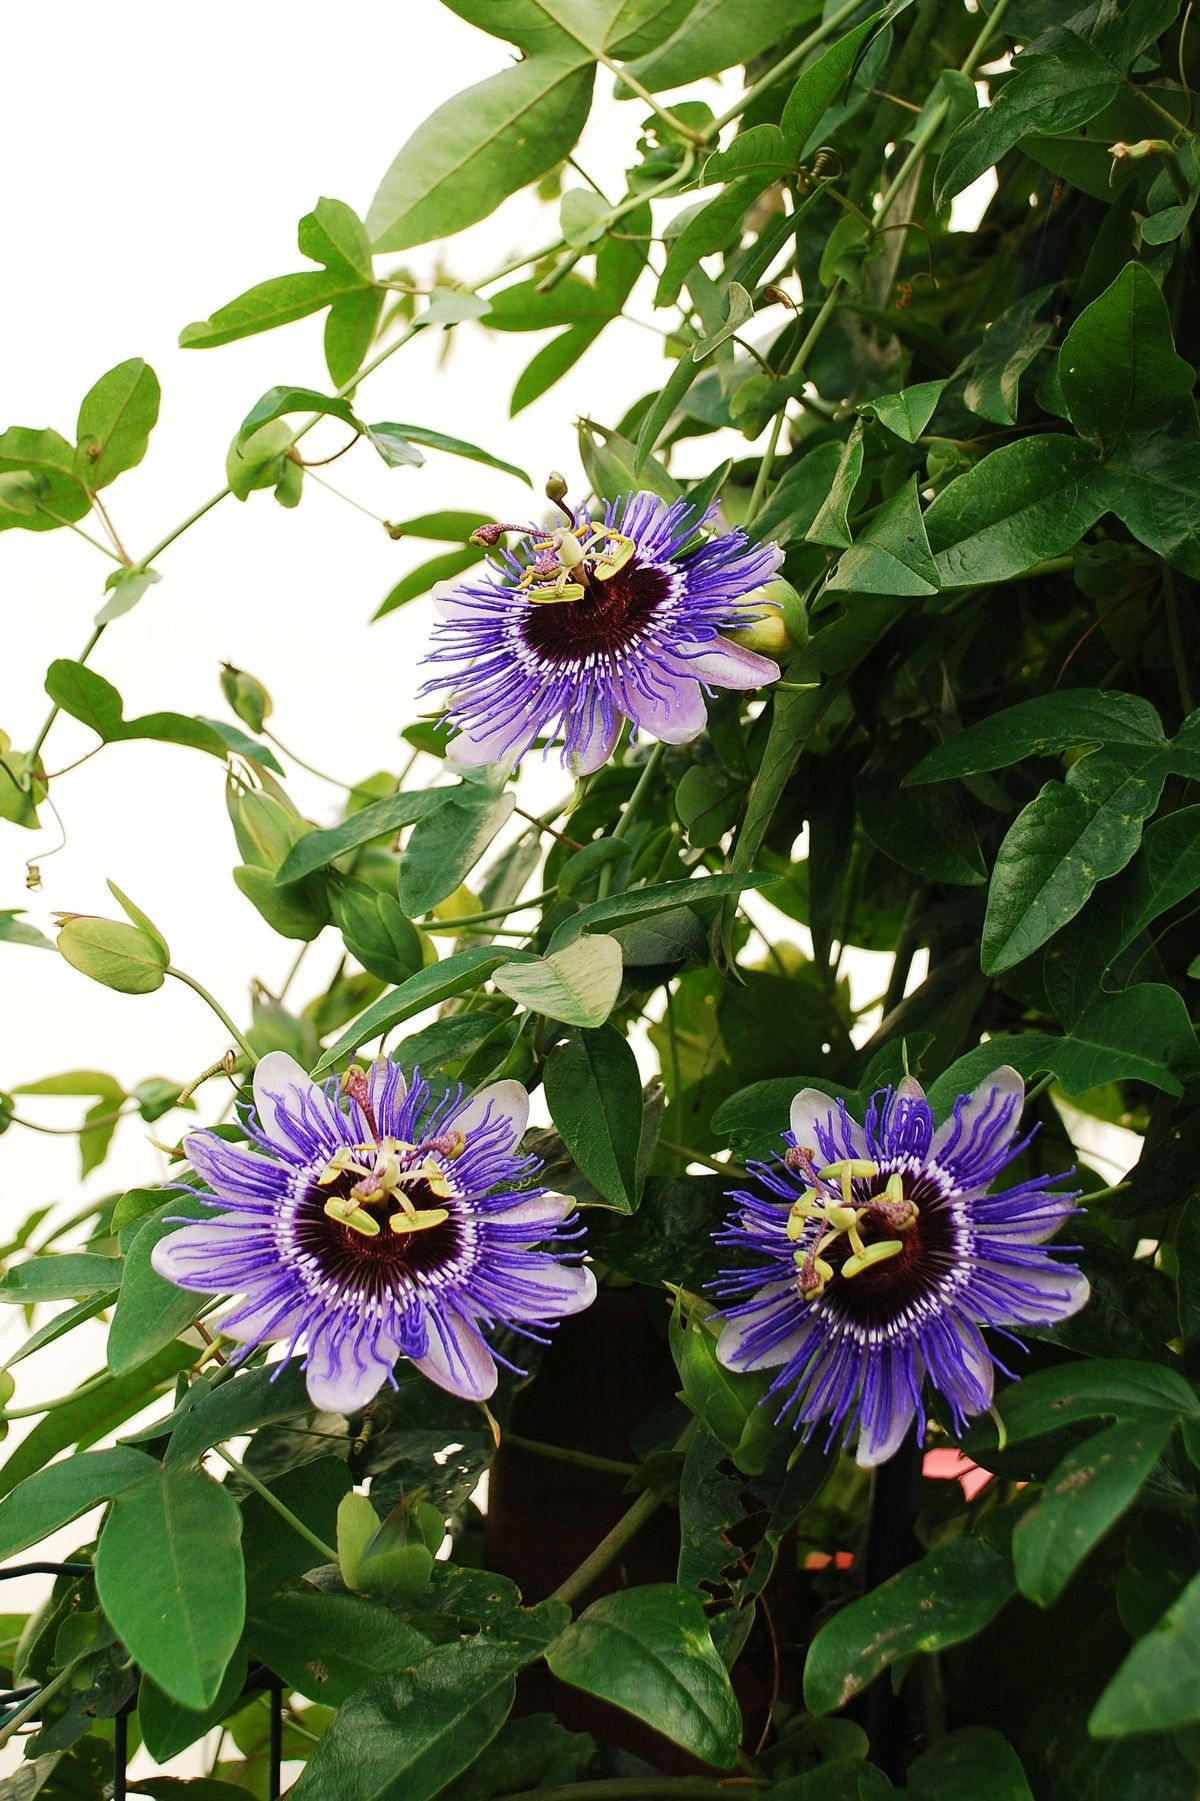 Specializing In Rare And Unusual Annual And Perennial Plants Including Cottage Garden Heirlooms And Hard T Passion Fruit Flower Flowering Vines Passion Flower